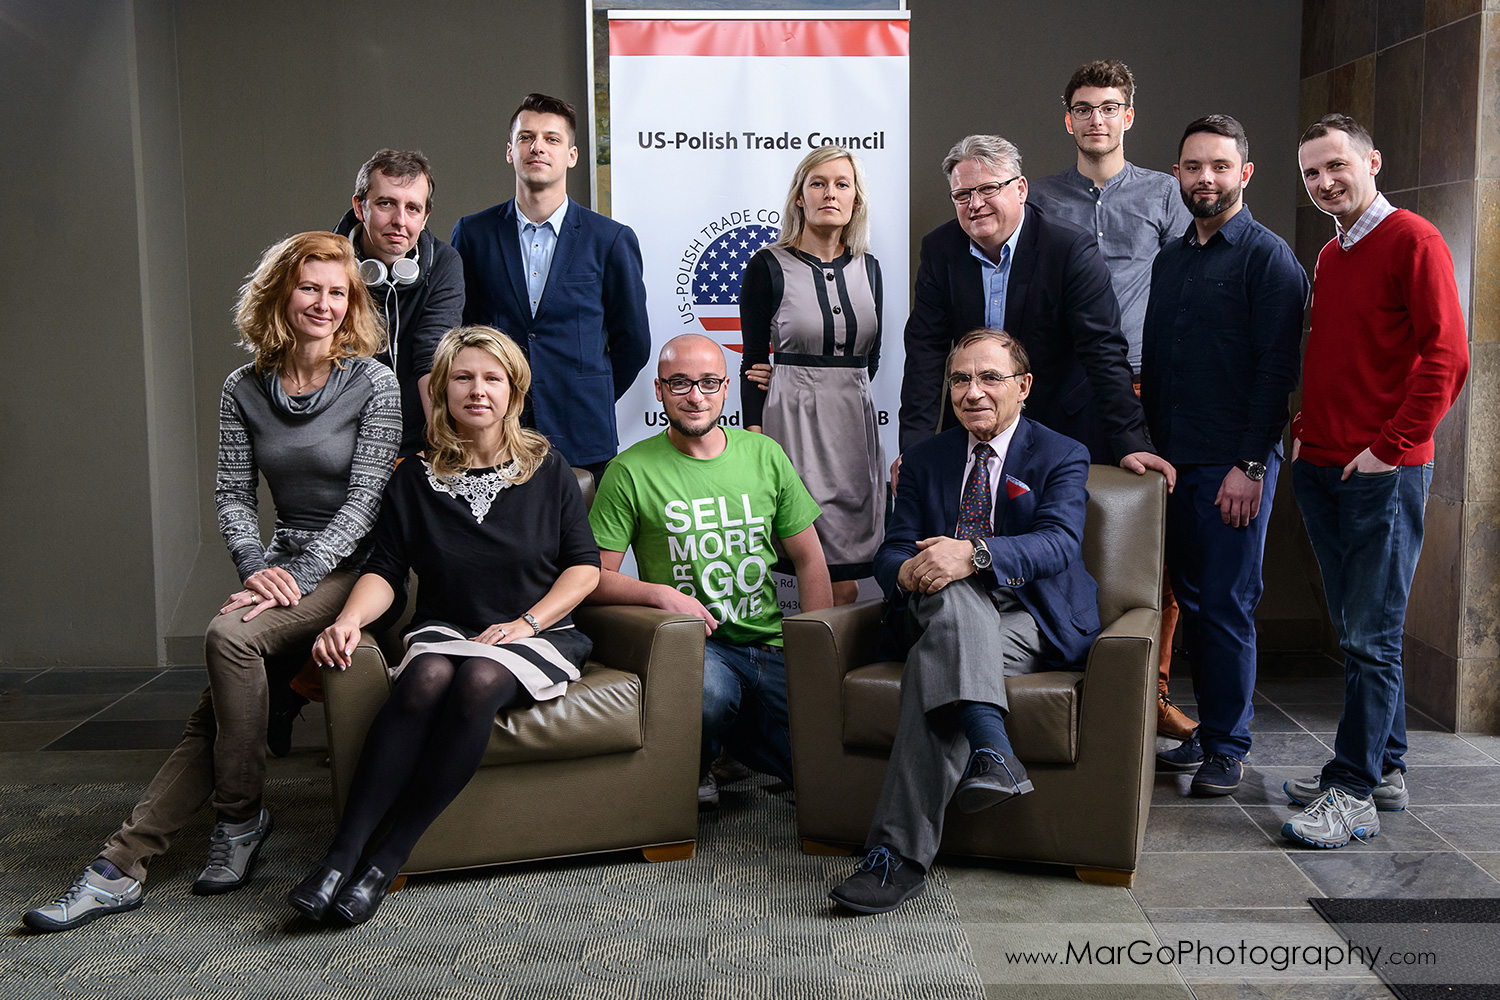 business portrait of the group of people